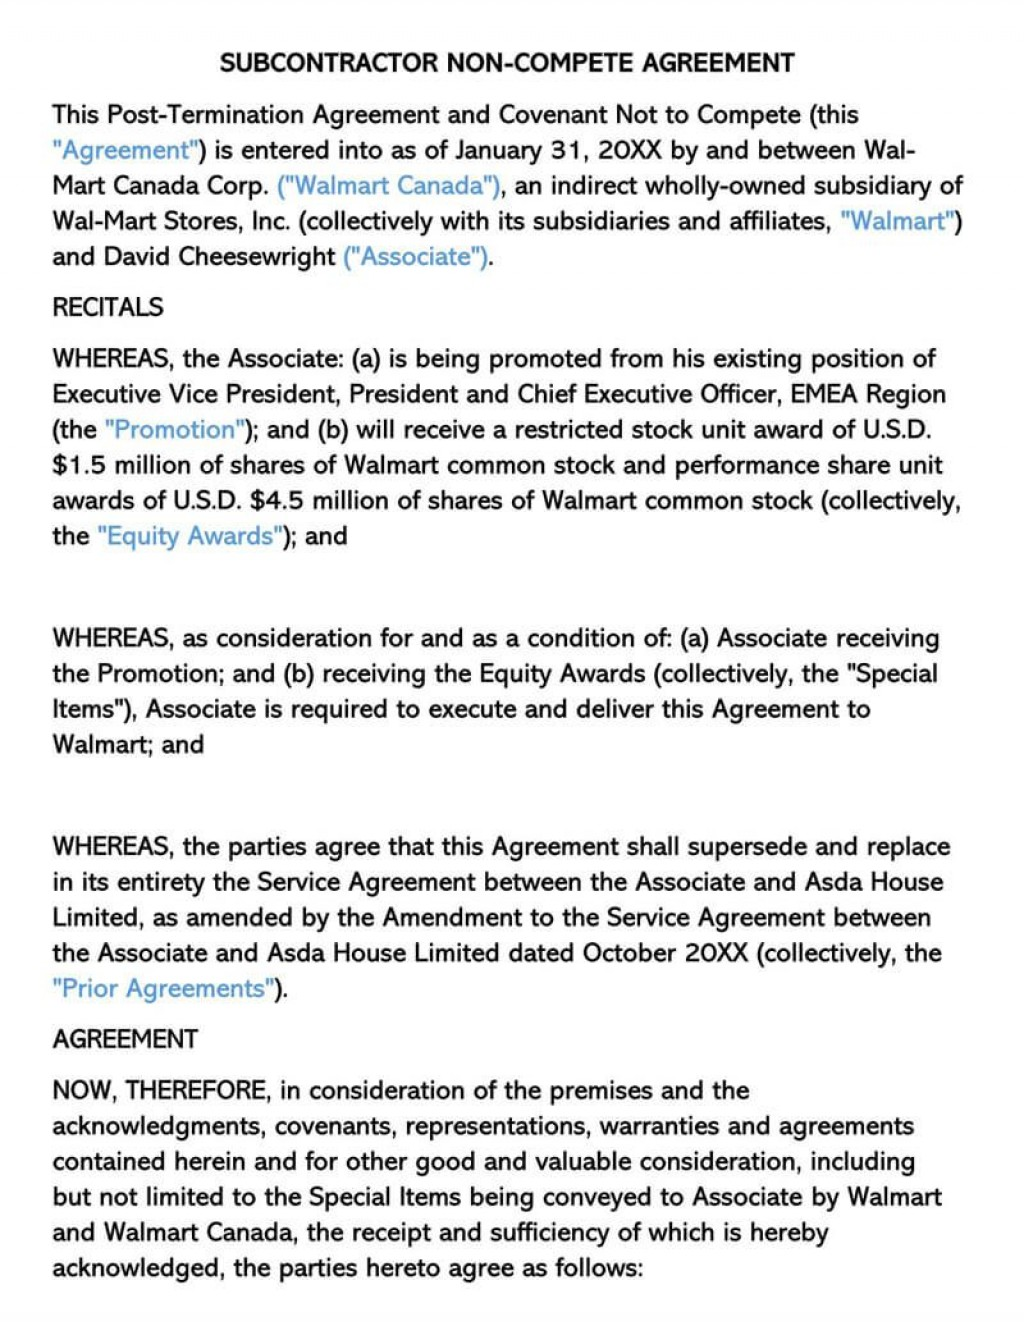 009 Impressive Non Compete Agreement Template High Resolution  Sample India Free FloridaLarge